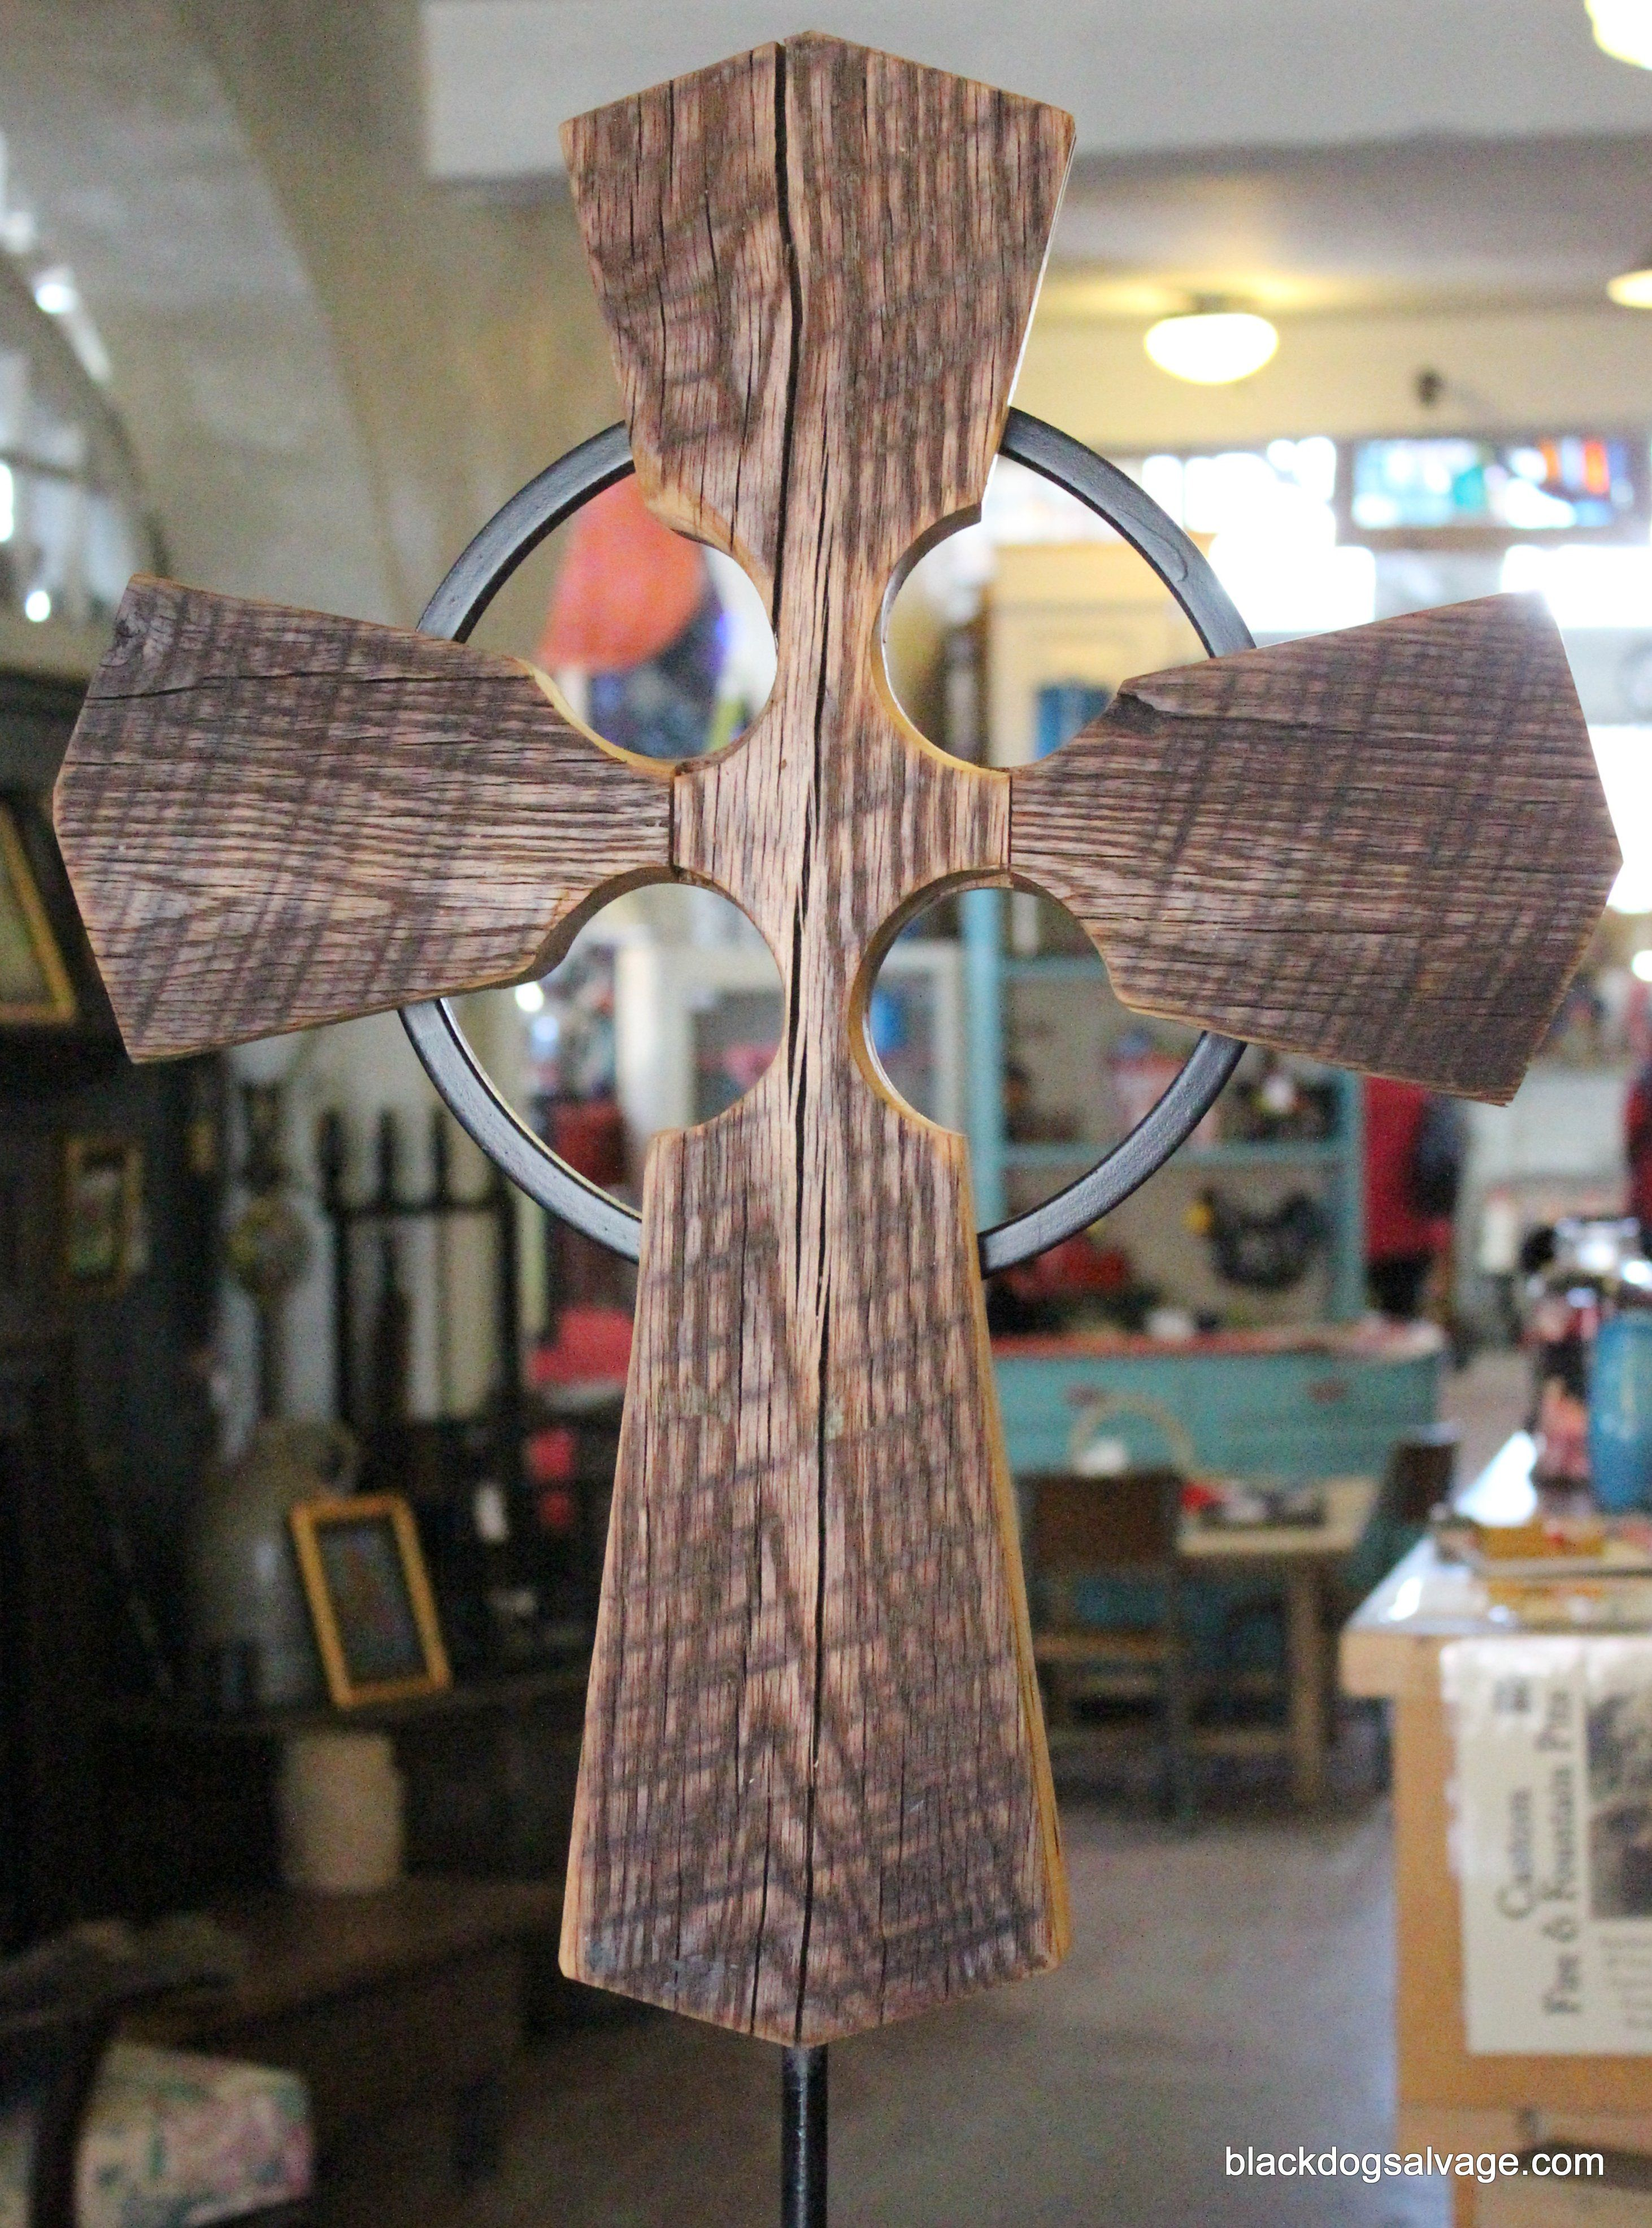 Mike carved this beautiful cross out of salvaged wood from the original spires of St. Andrew's Catholic Church in Roanoke, Virginia. It will be auctioned off at Roanoke Catholic School's St. Patrick's Day dinner on Saturday to fund student scholarships!